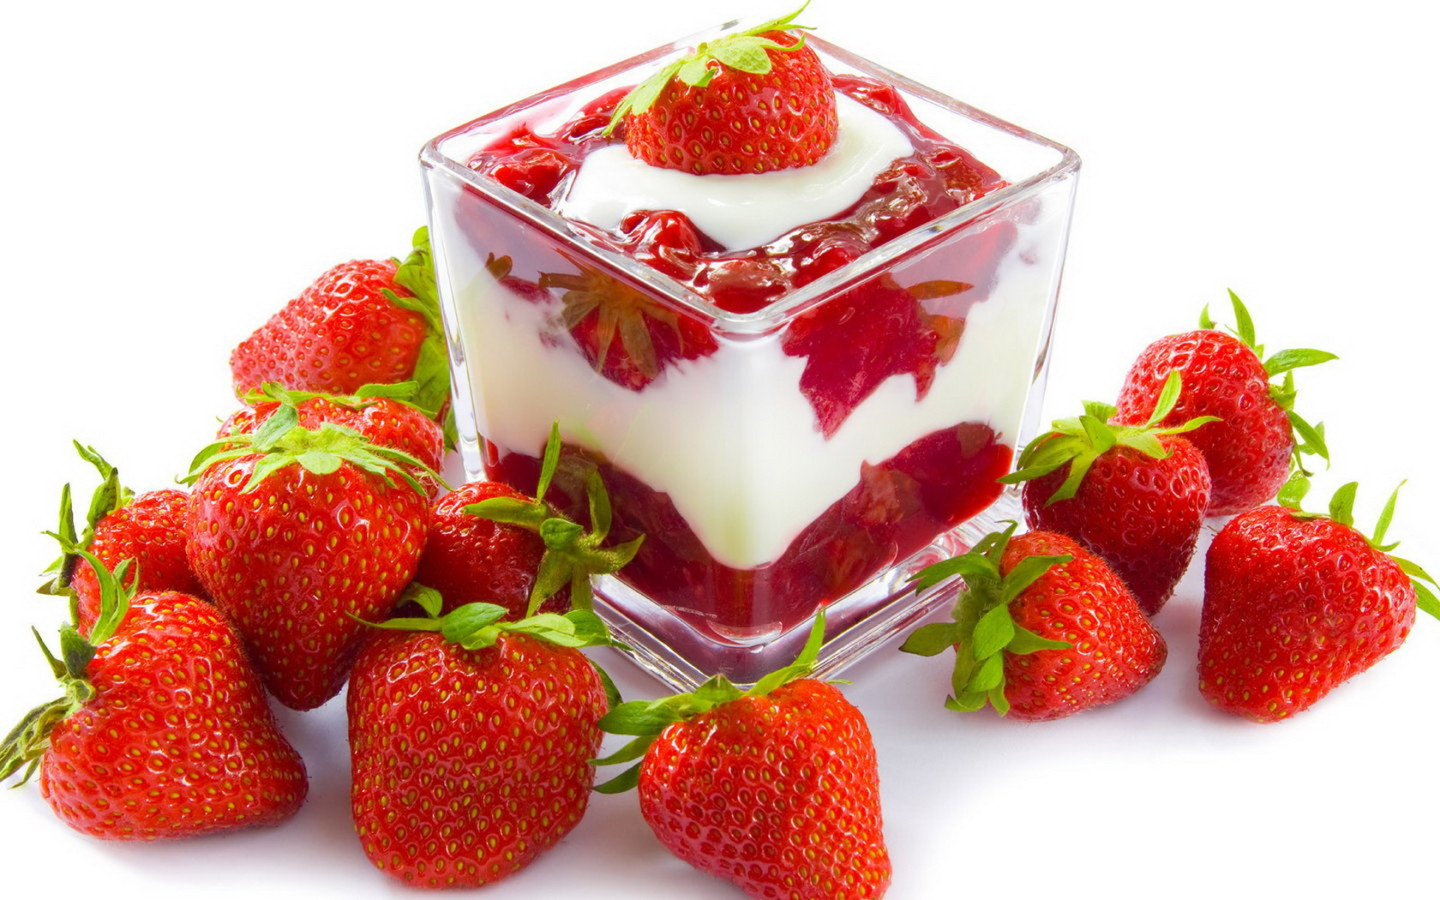 Strawberries and Cream Dessert Recipe